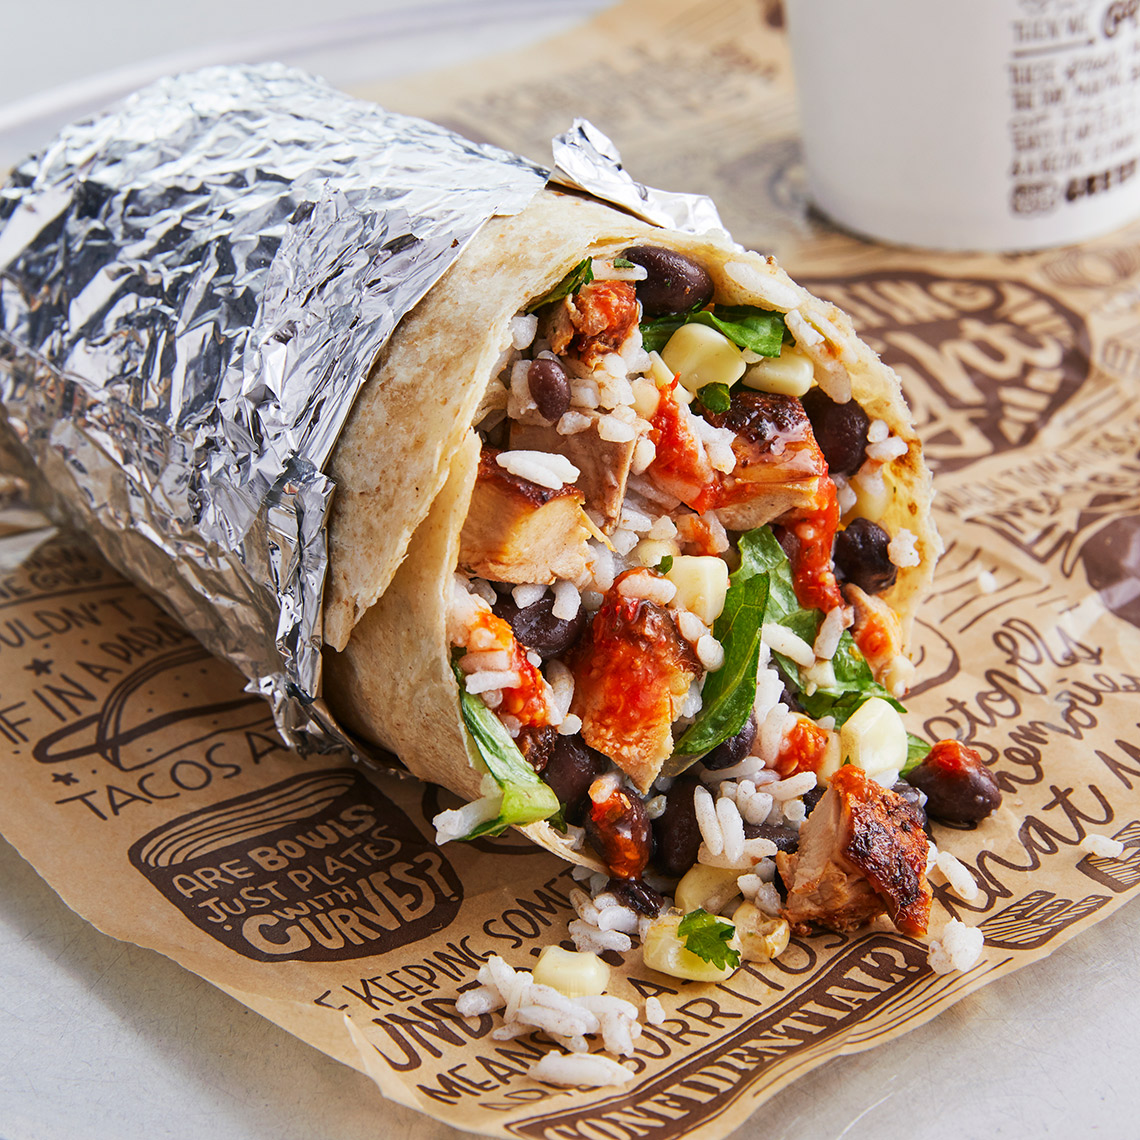 Chipotle_NationalBurritoDay_224